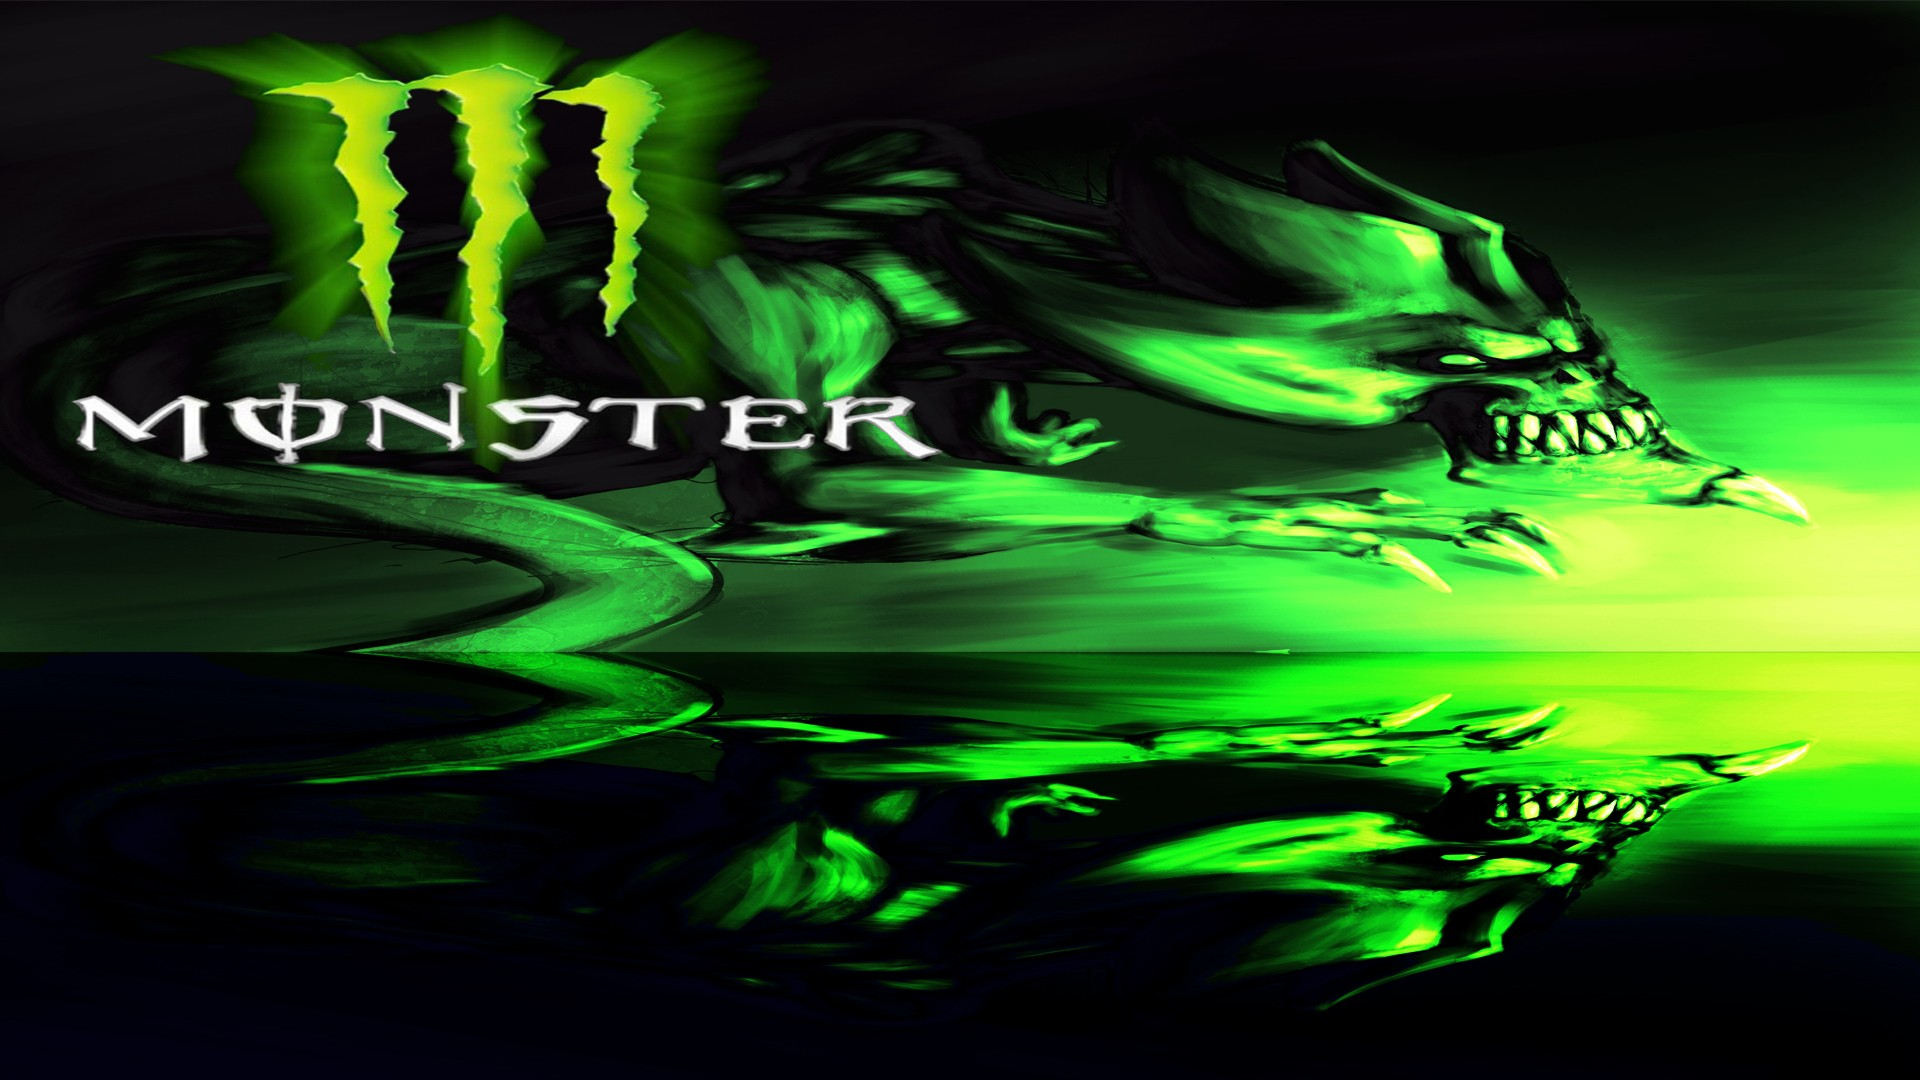 Pics Photos   Monster Energy Logo Wallpaper For Desktop 1920x1080